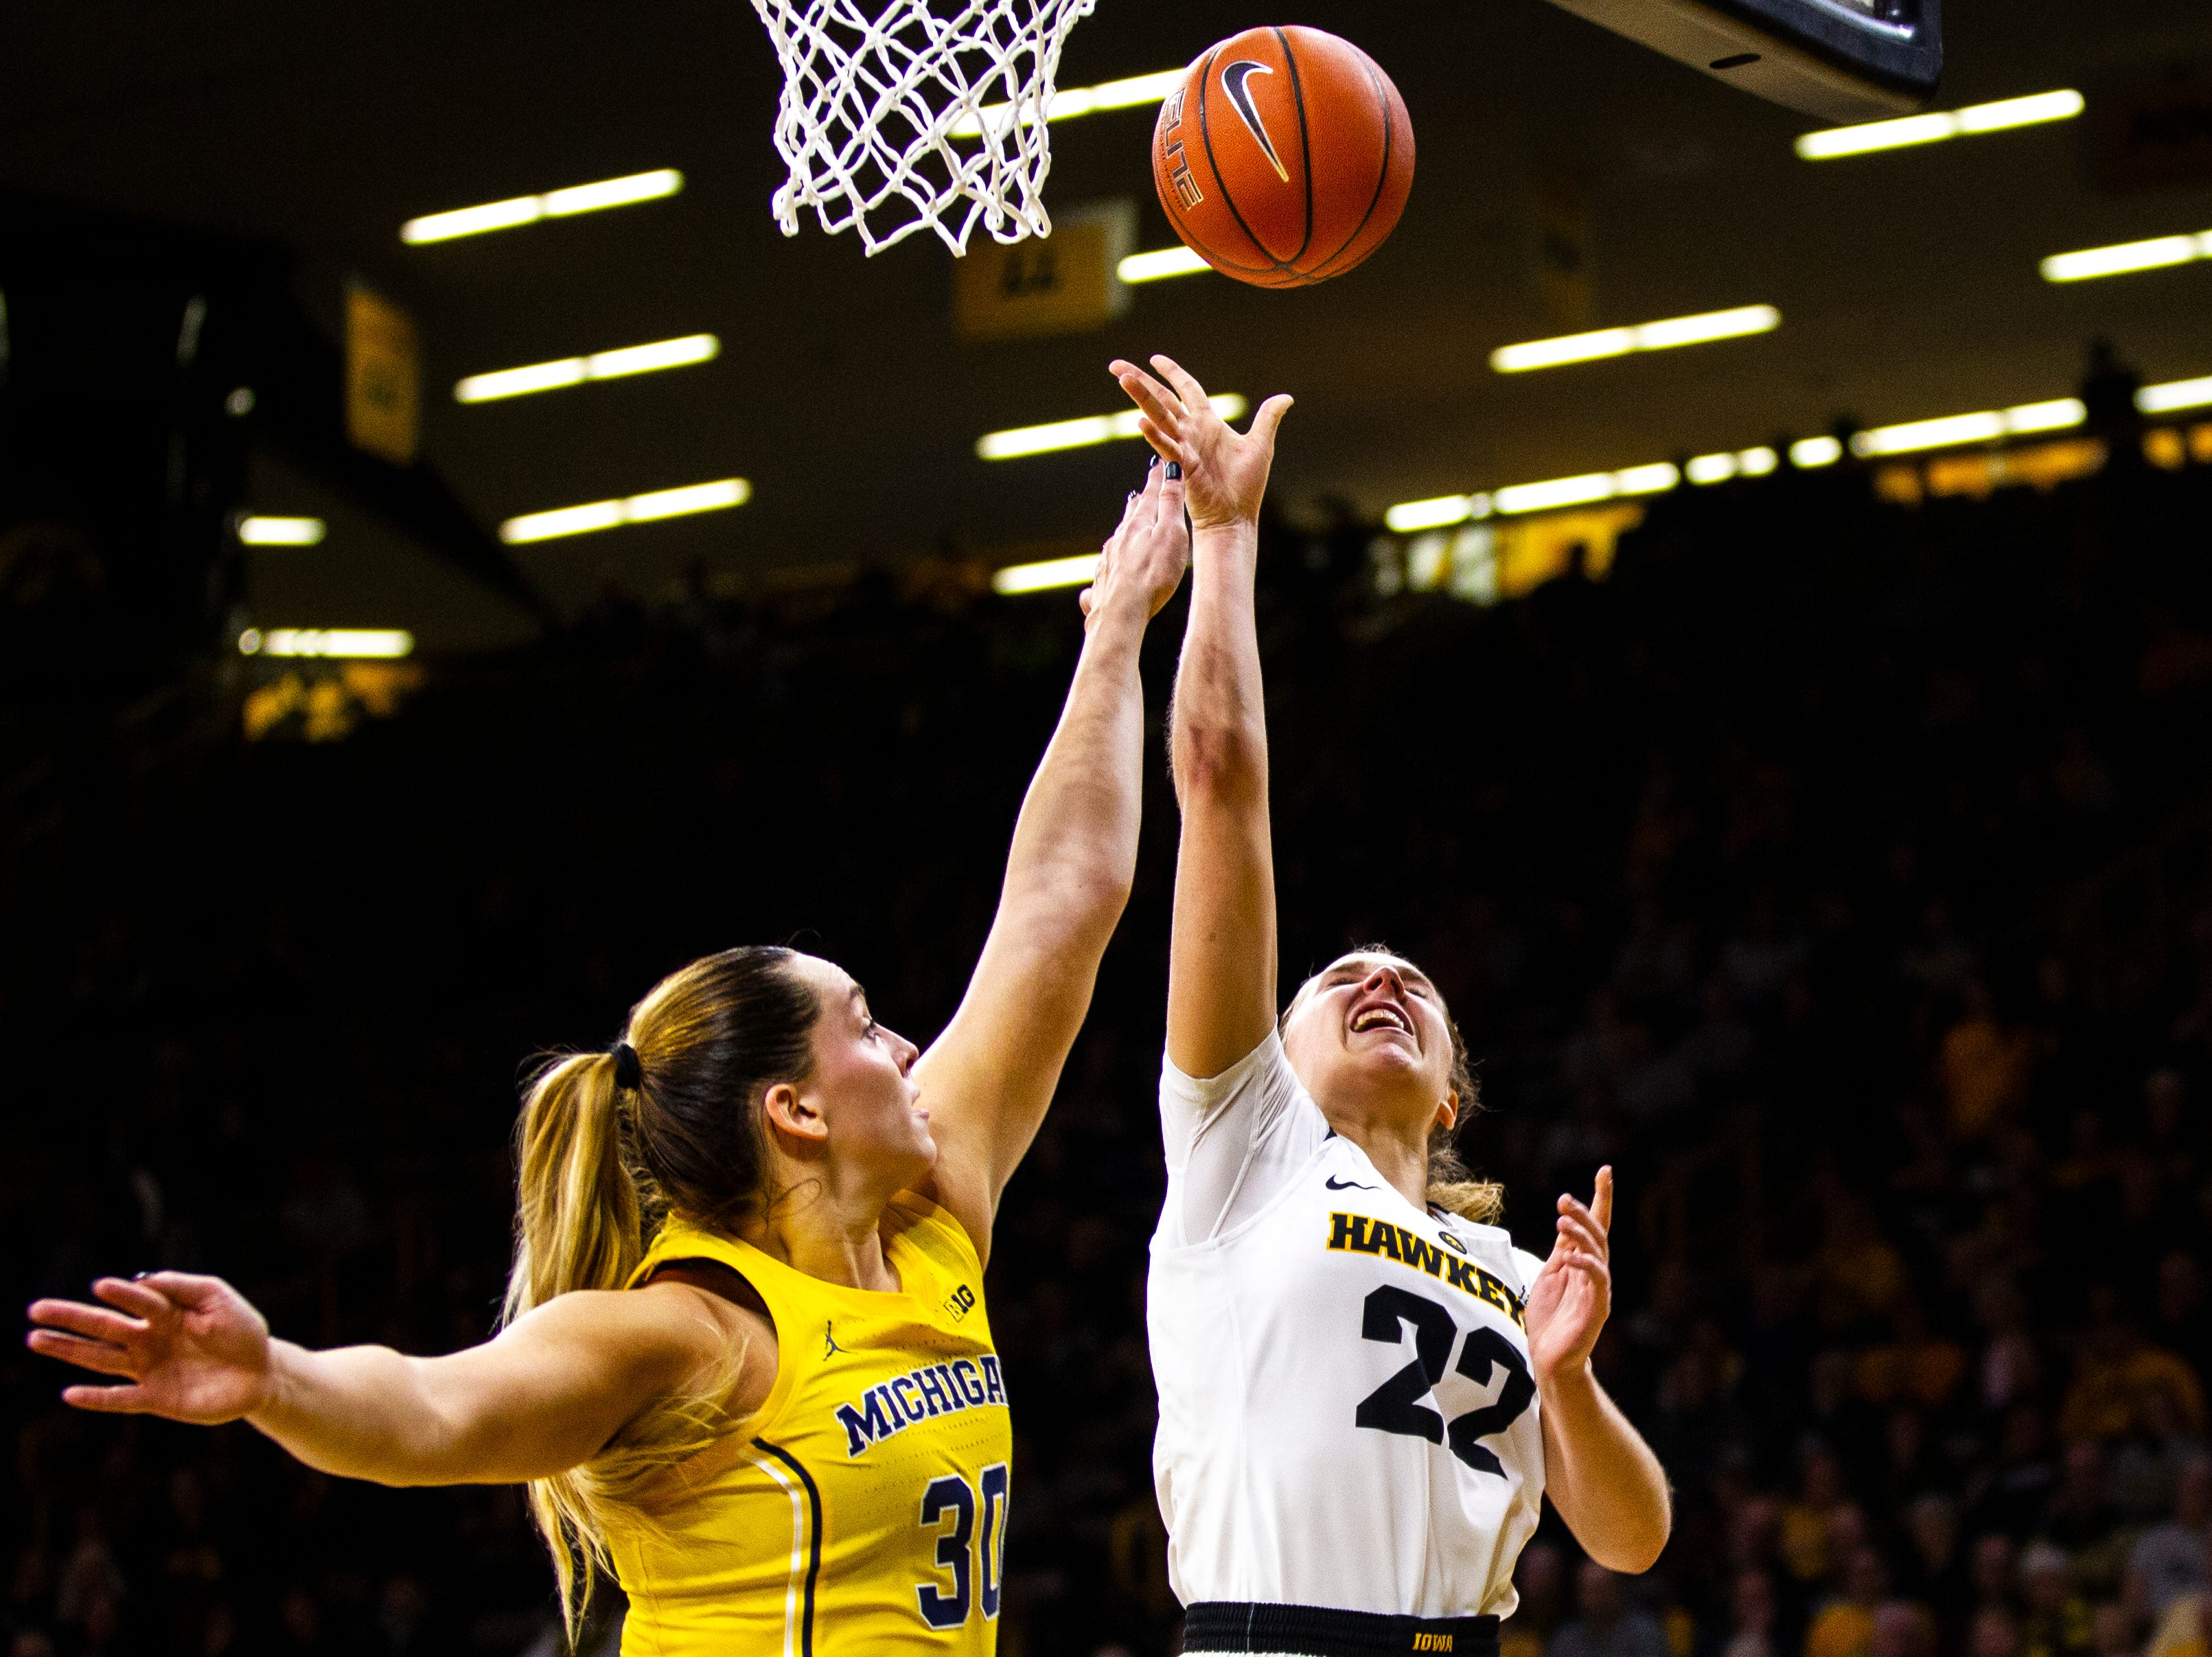 Iowa guard Kathleen Doyle (22) makes a basket past Michigan center Hallie Thome (30) during a NCAA Big Ten Conference women's basketball game on Thursday, Jan. 17, 2019, at Carver-Hawkeye Arena in Iowa City, Iowa.